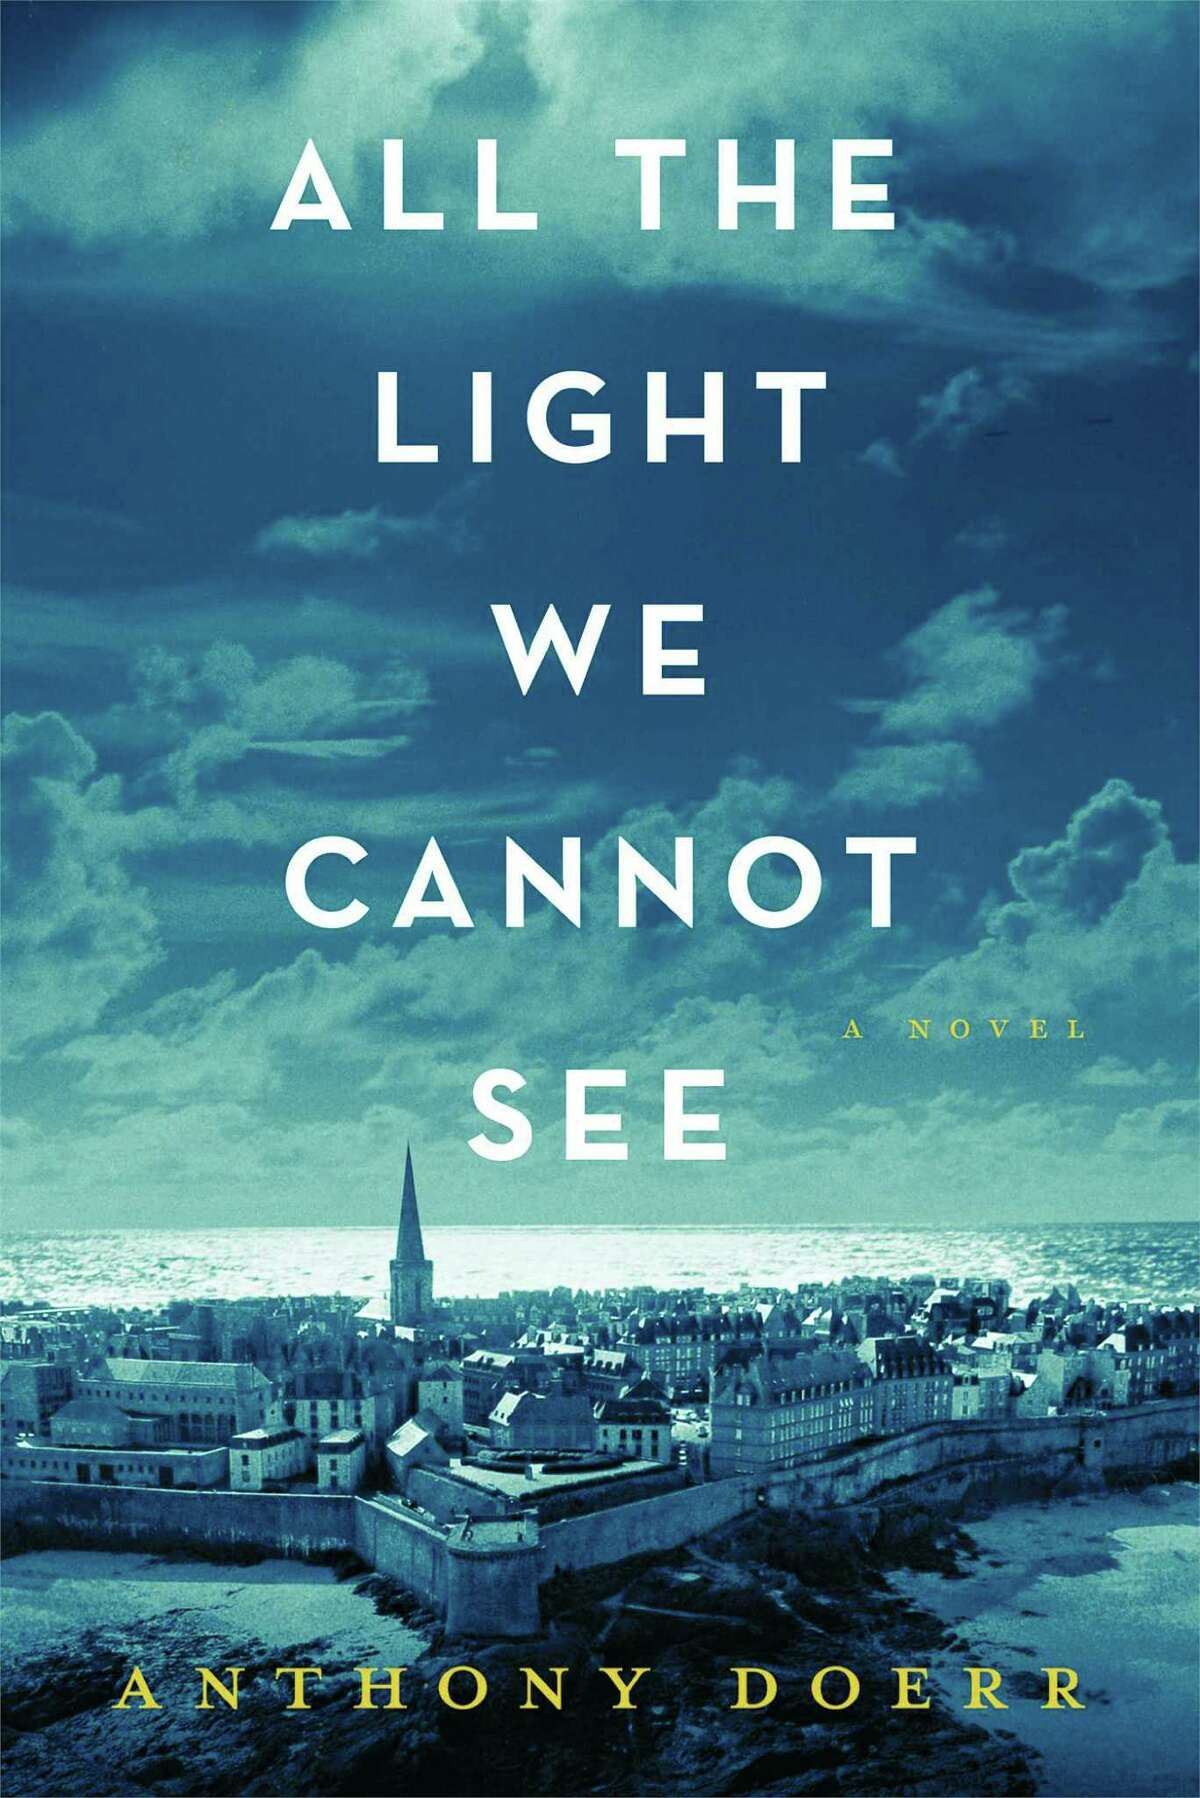 """""""All the Light We Cannot See,"""" by Anthony Doerr This exquisite World War II novel combines the story of a young French woman in German-occupied Saint-Malo, France, and a German soldier whose particular talent has brought him to the same town. Their stories will grip you from the first page. (BWB)"""